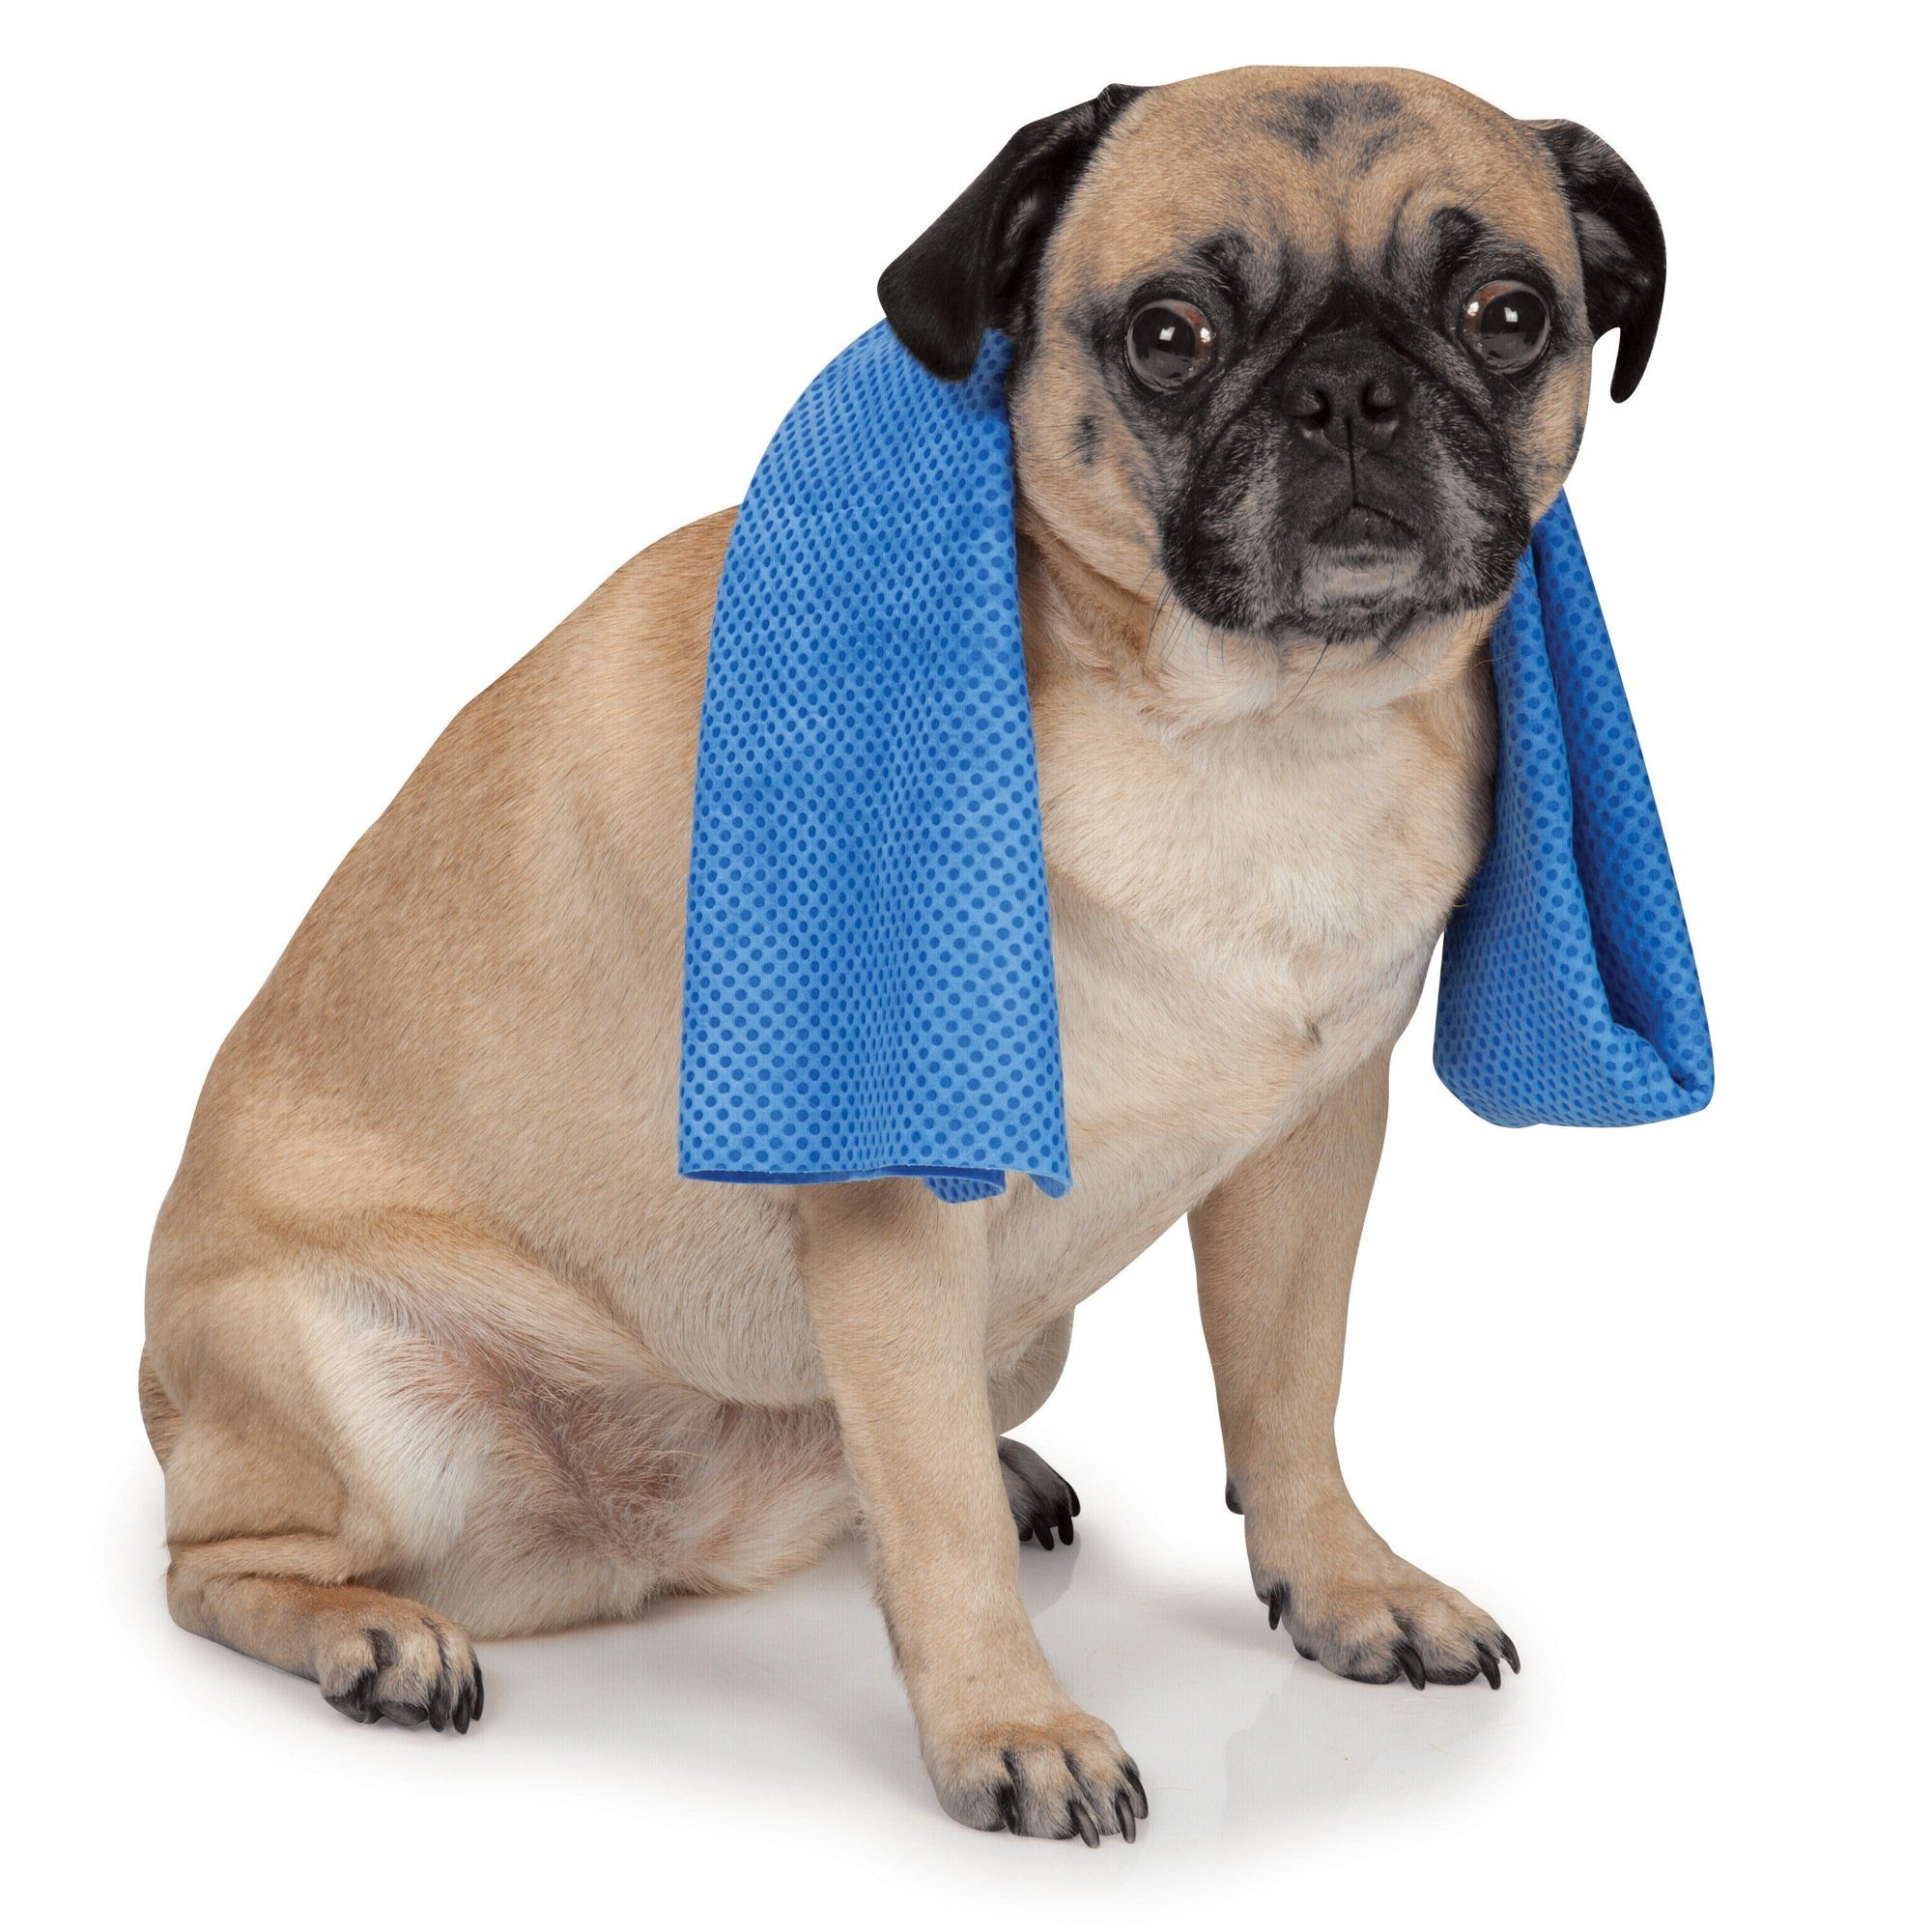 Cool Pup Dog Cooling Pet Towel Want To Know More Click On The